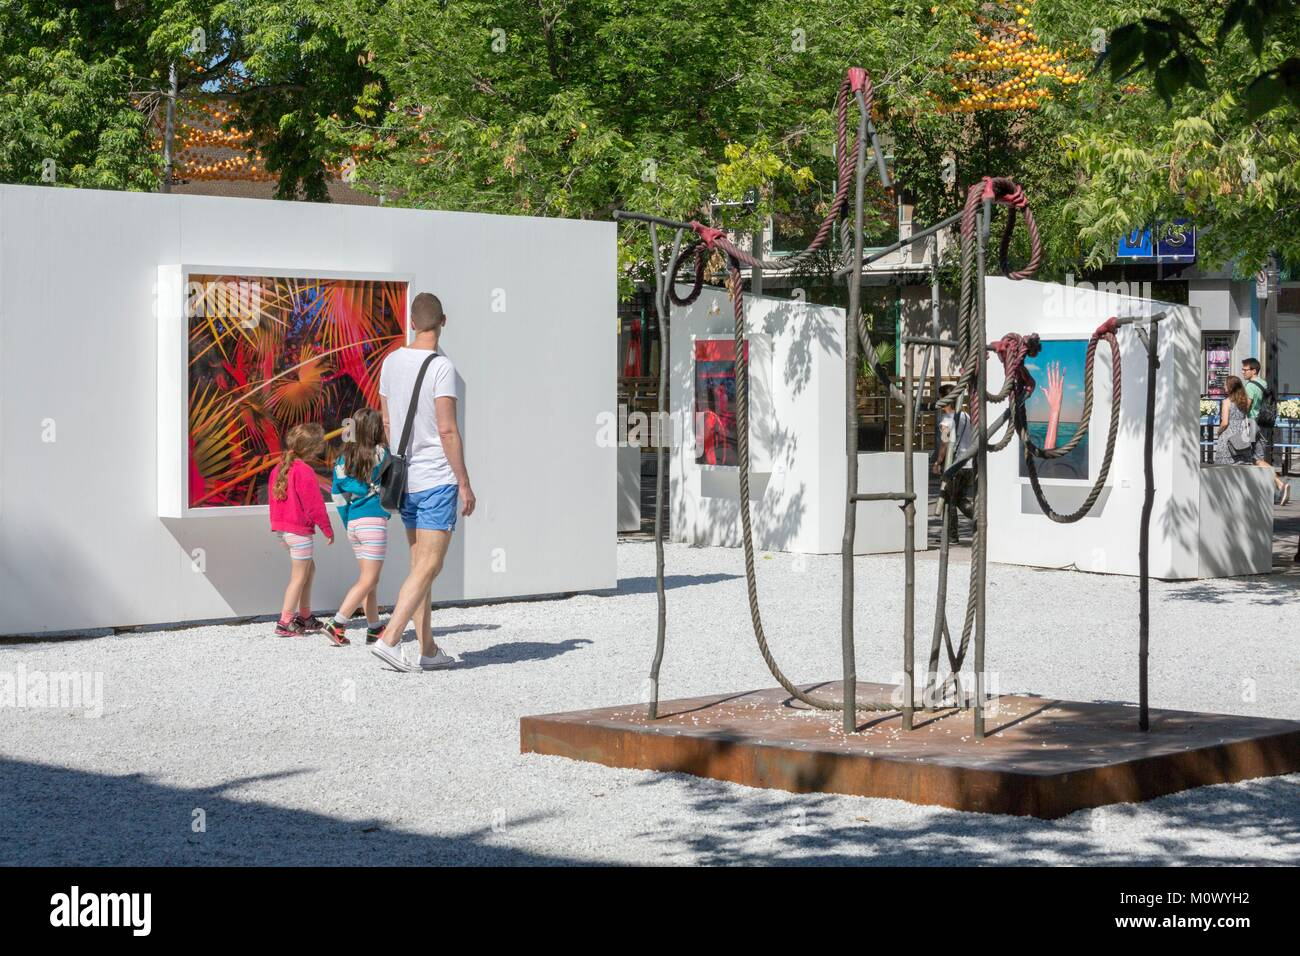 Canada,Quebec province,Montreal,the Village,St. Catherine Street,the open gallery White Gallery,photographic works - Stock Image